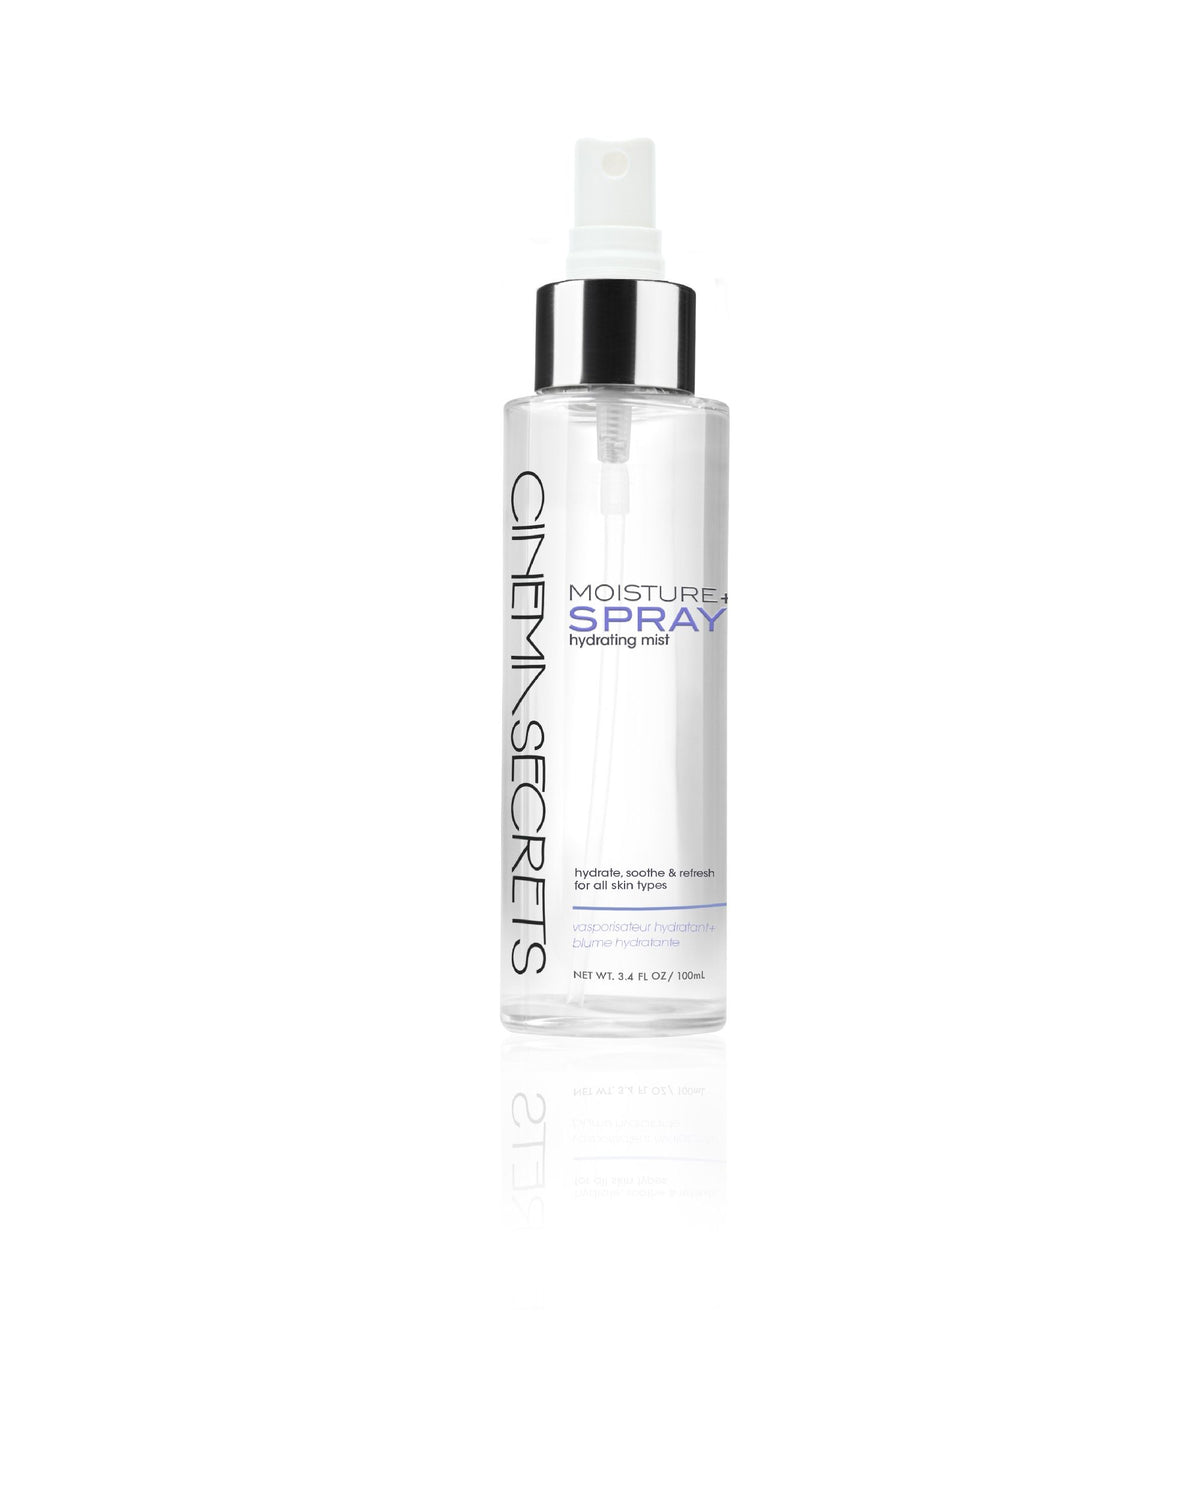 Cinema Secrets Moisture Spray Hydrating Mist